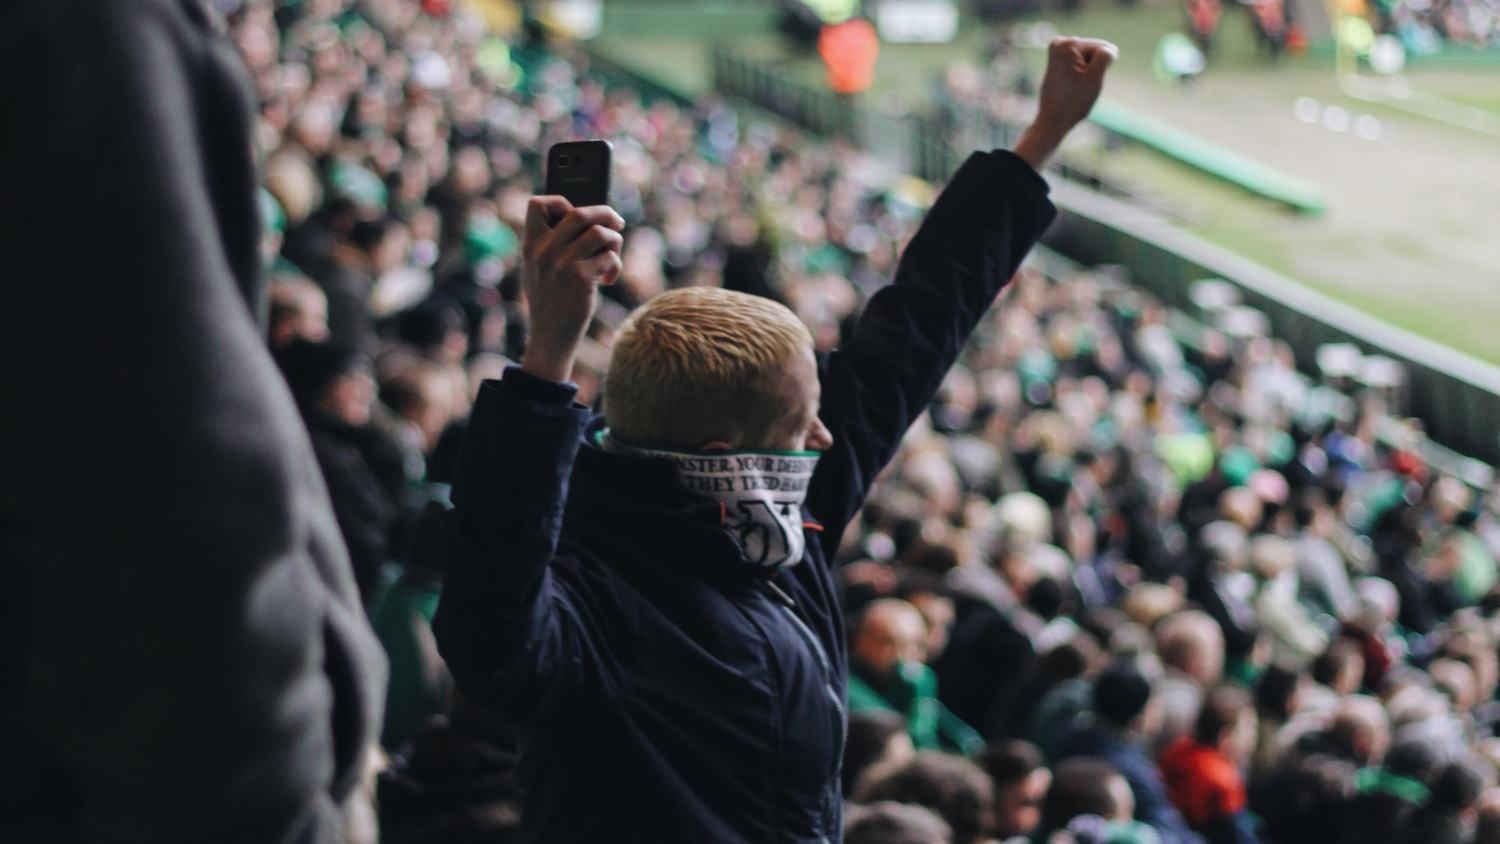 Glasgow's Green & White: Celtic's Green Brigade